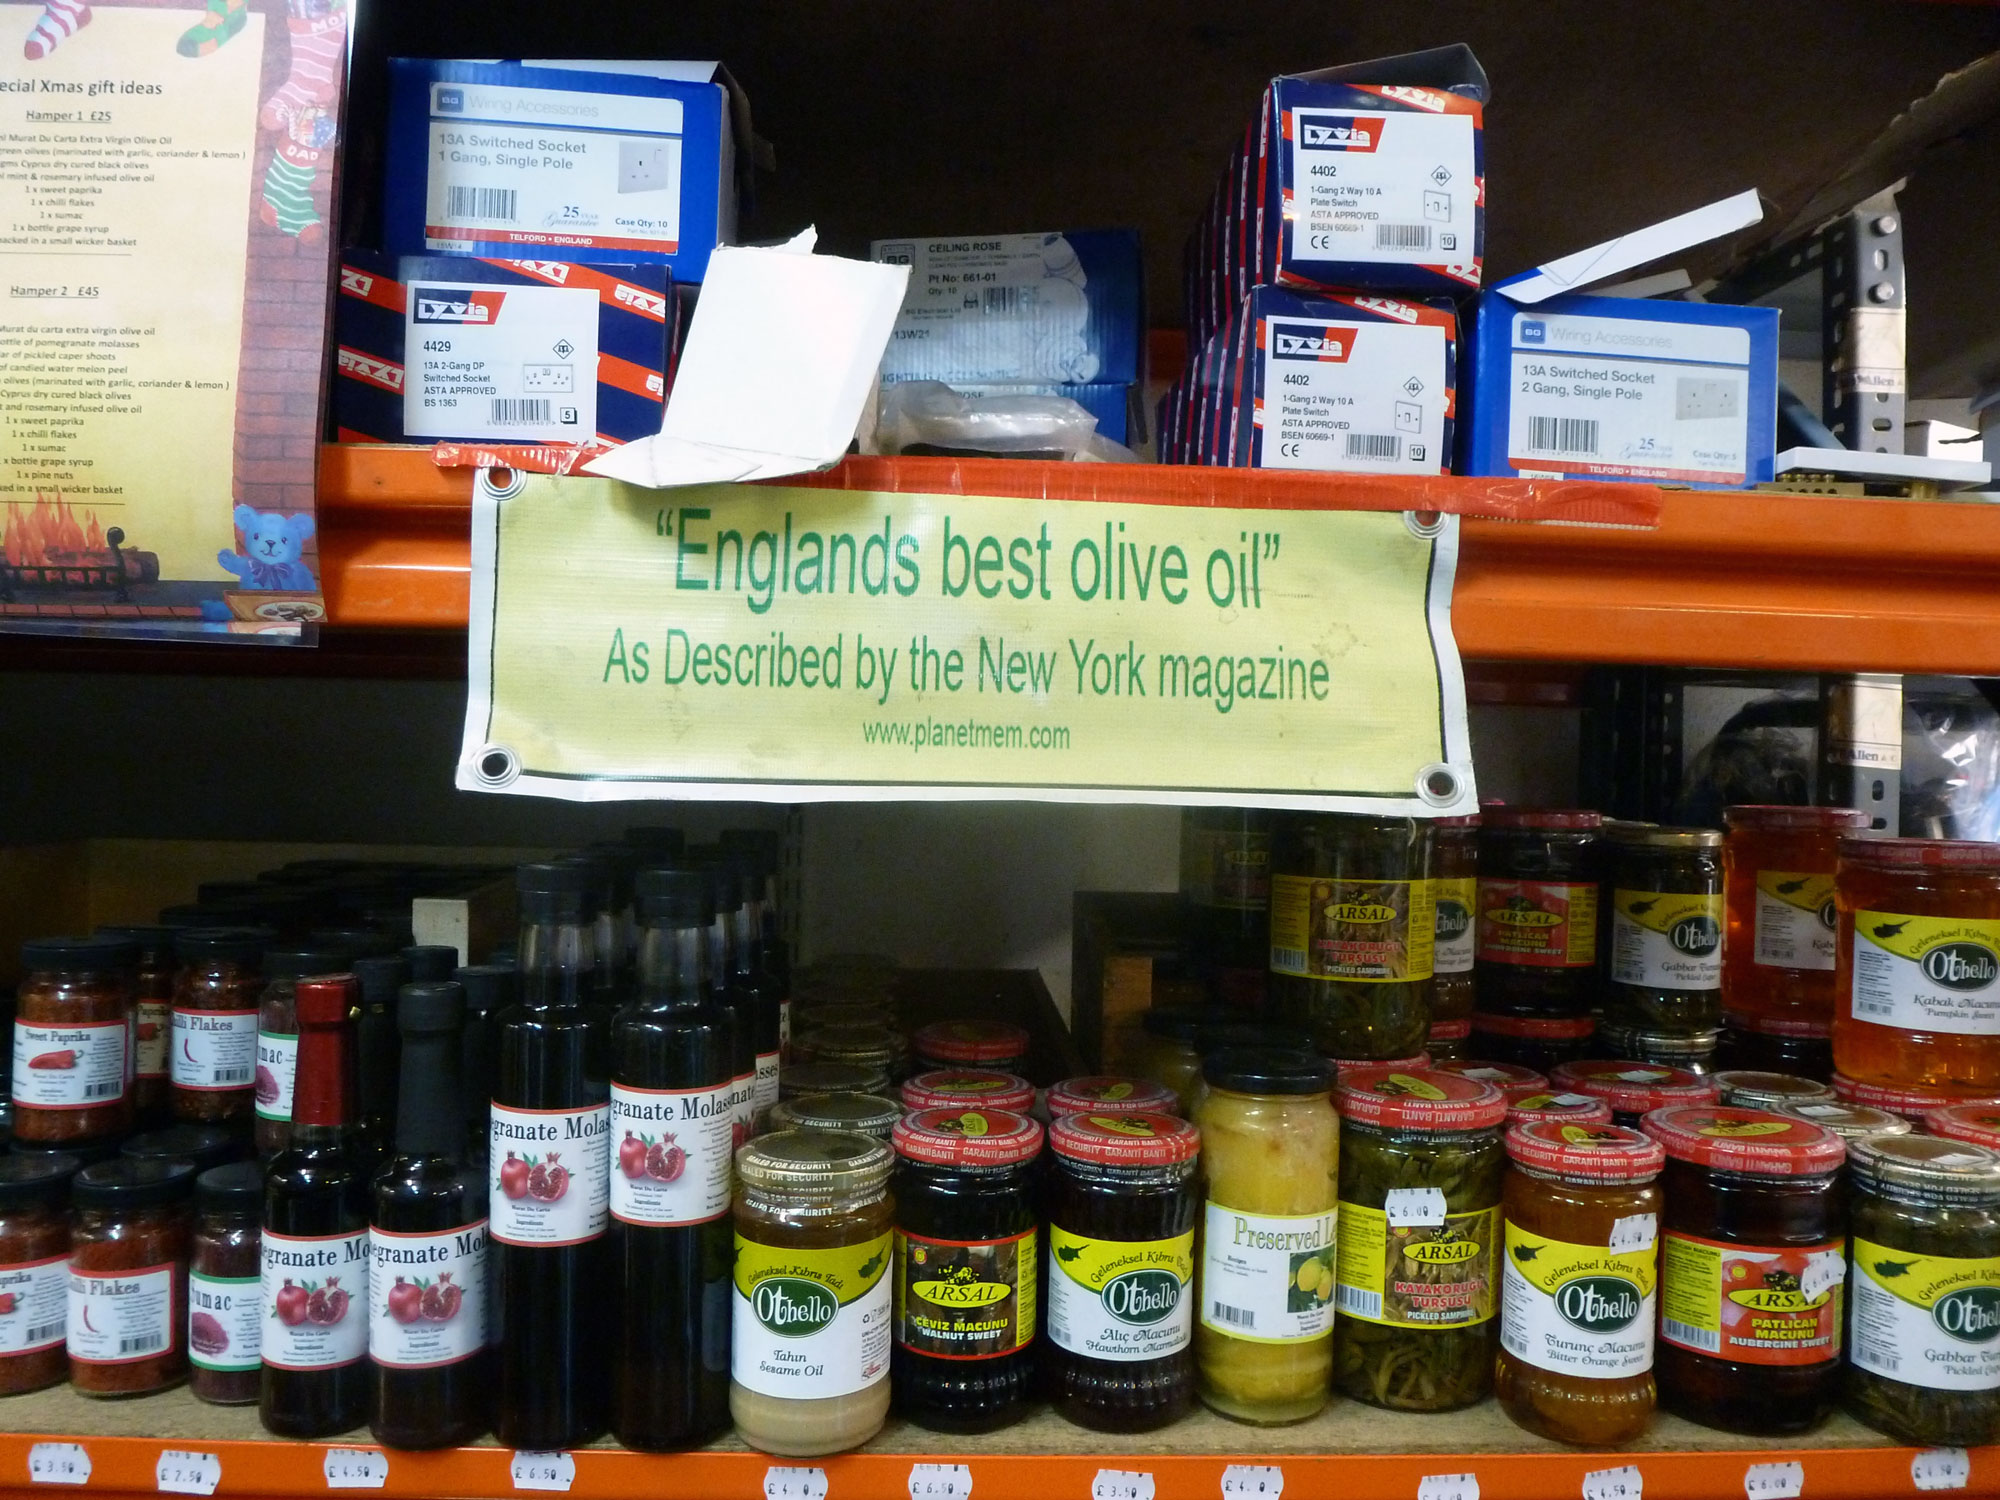 electrical-shop-olive-oil-london7